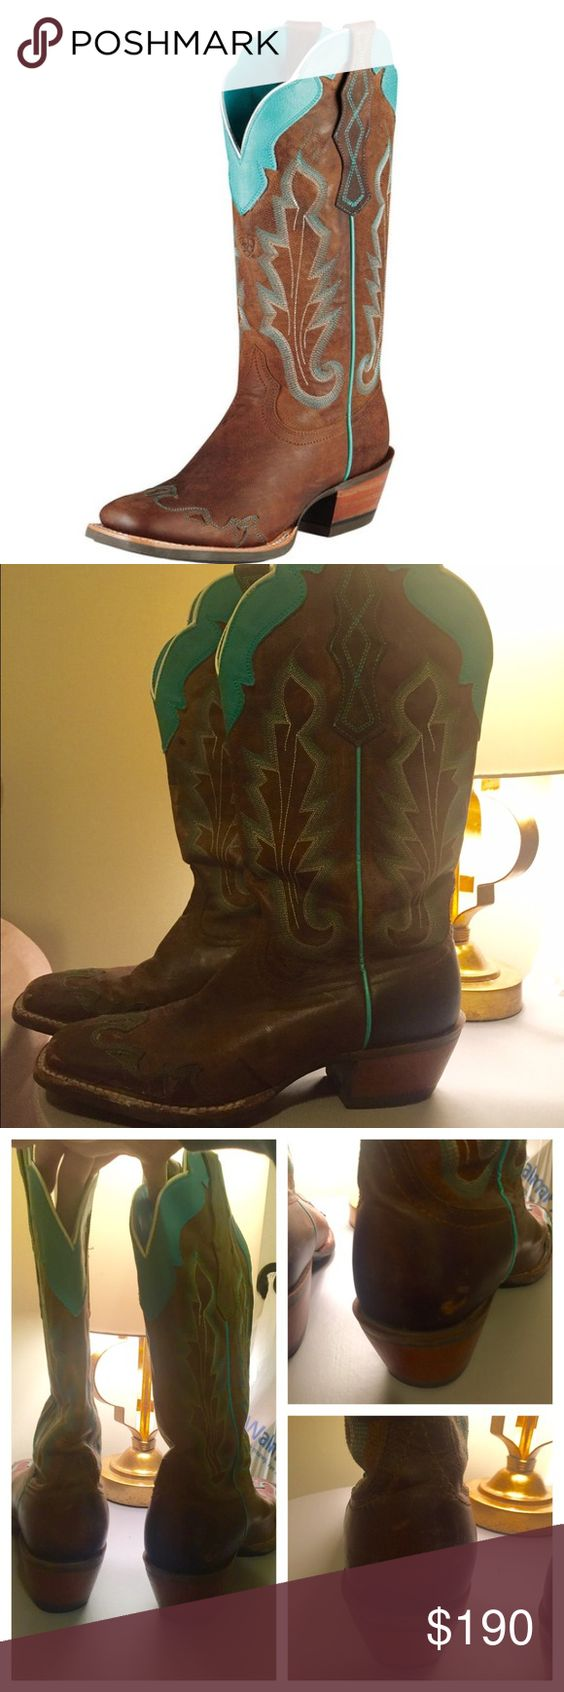 Heeled boots Cowboy boots and Overalls on Pinterest